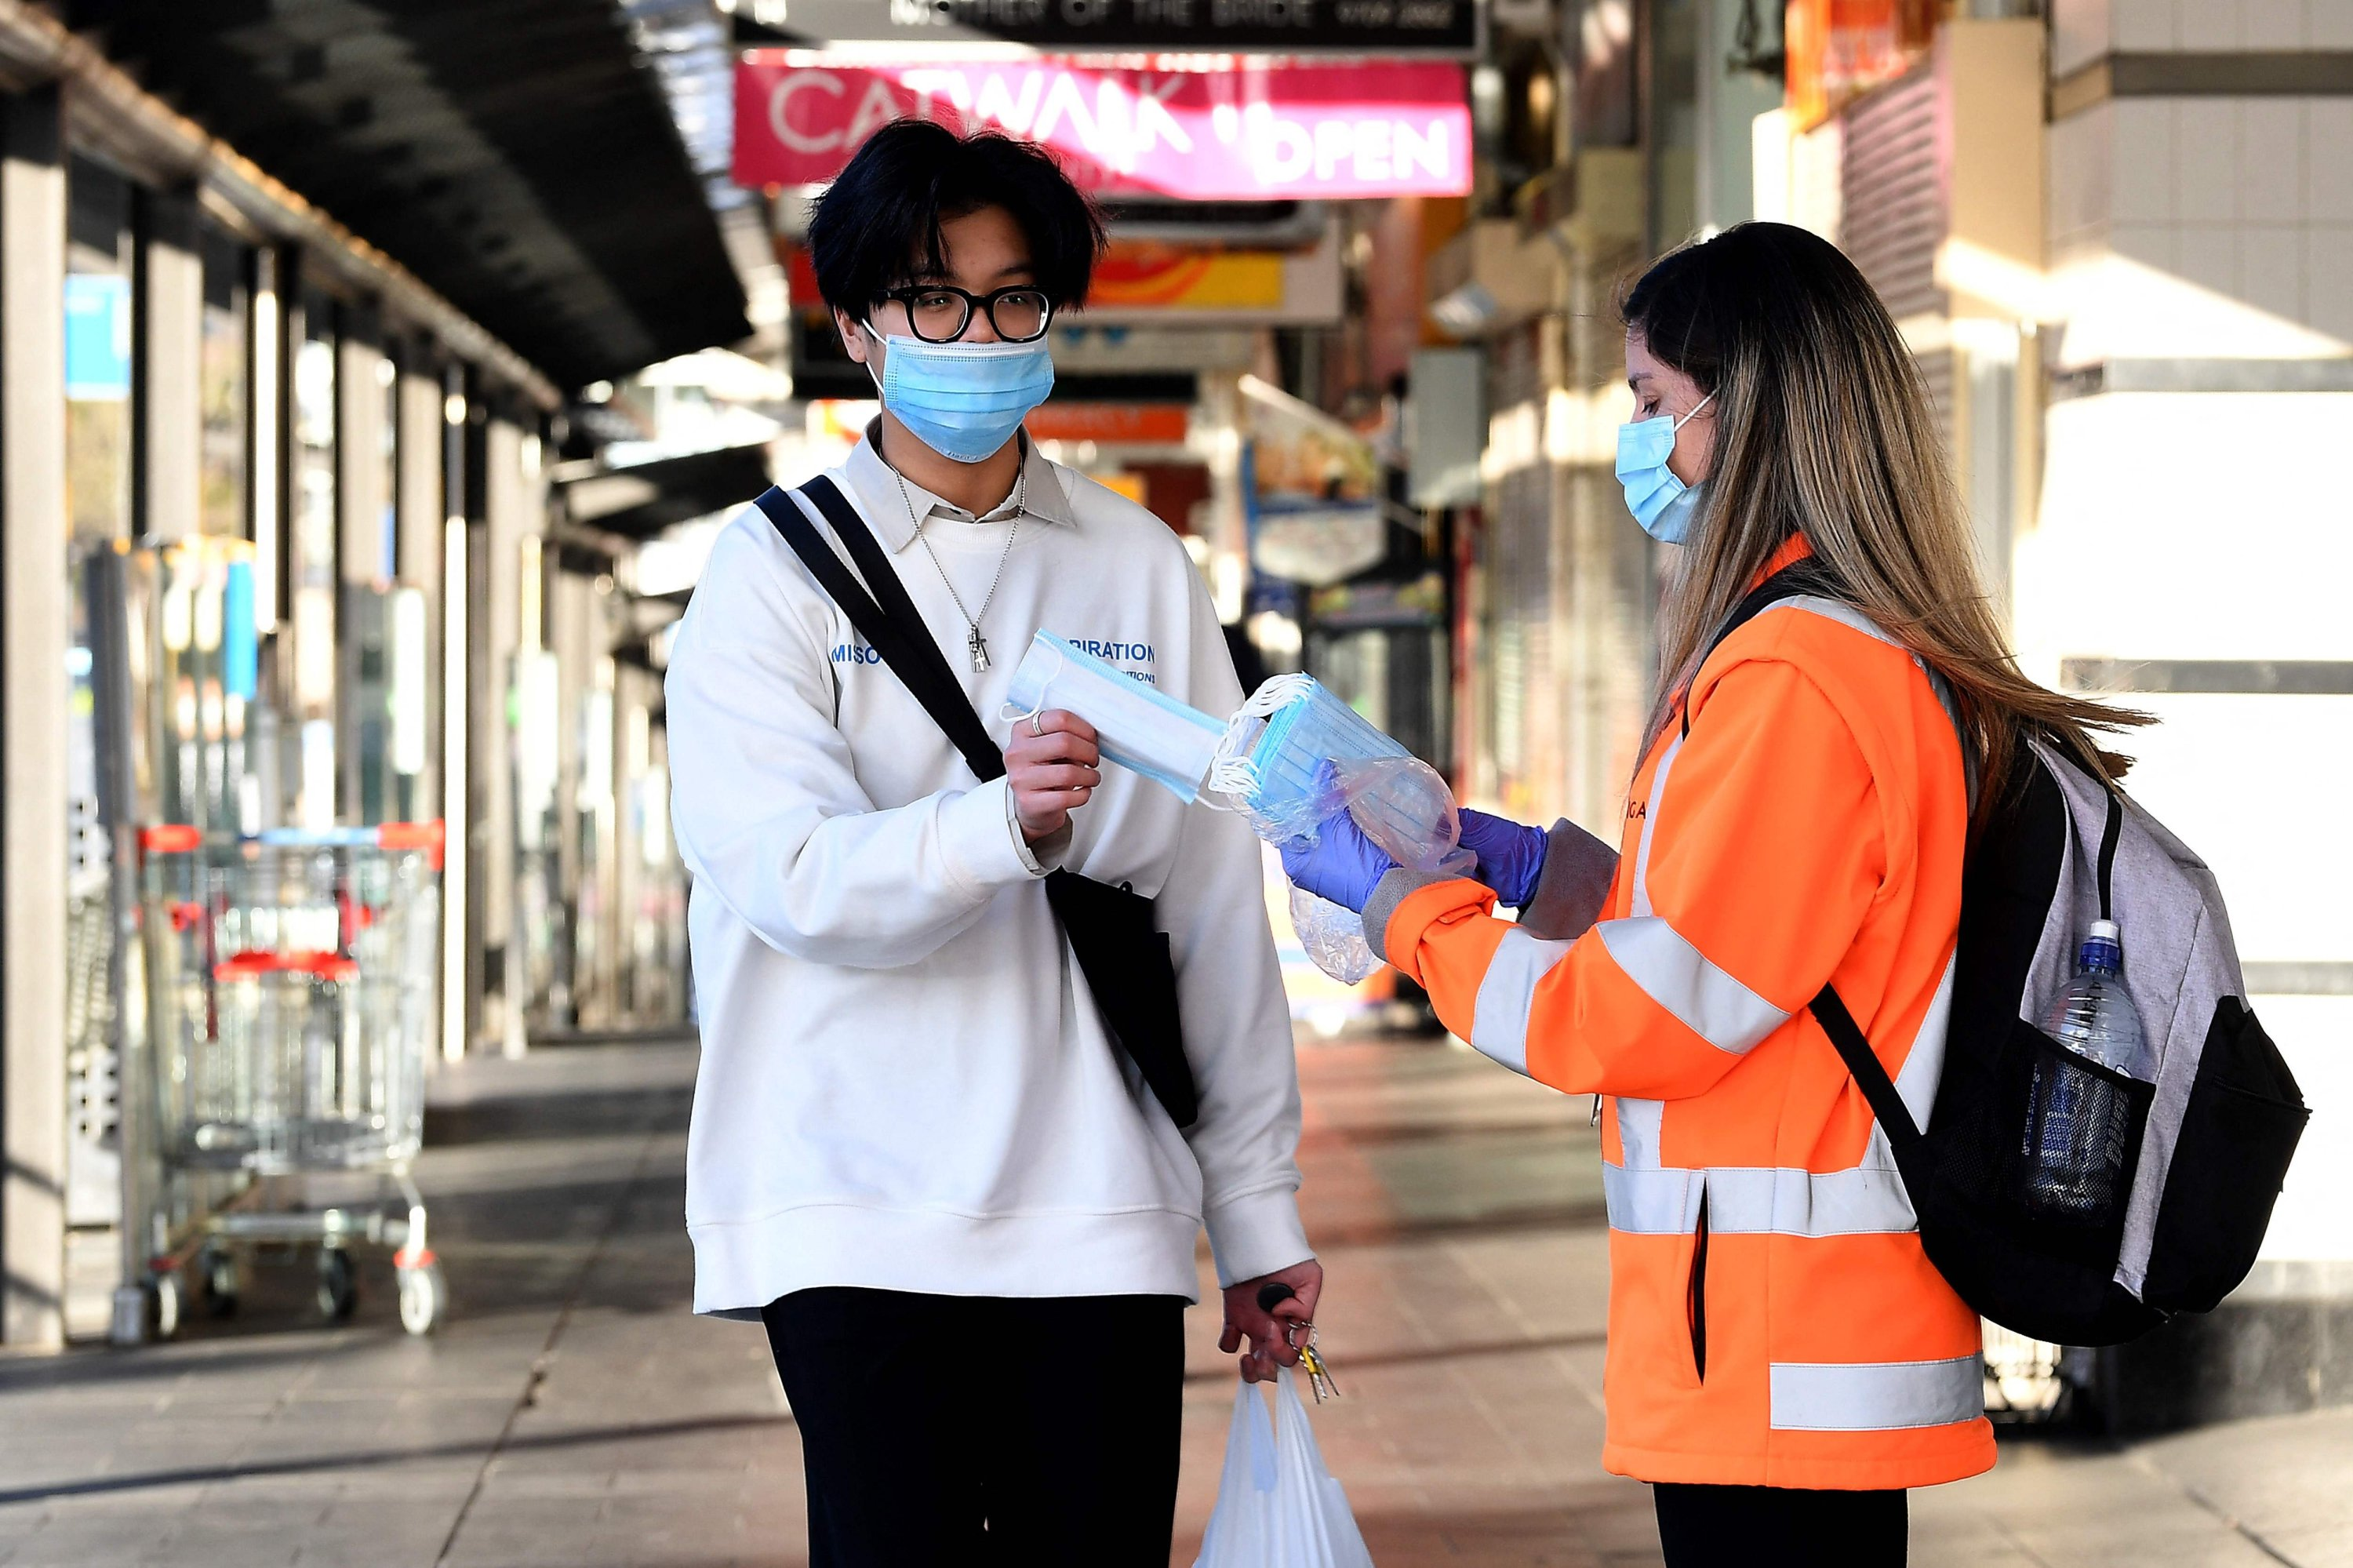 A volunteer distributes face masks in Bankstown suburb of Sydney as the city's more than five million people are enduring their seventh week under stay-at-home orders, Sydney, Australia, Aug. 11, 2021. (AFP Photo)